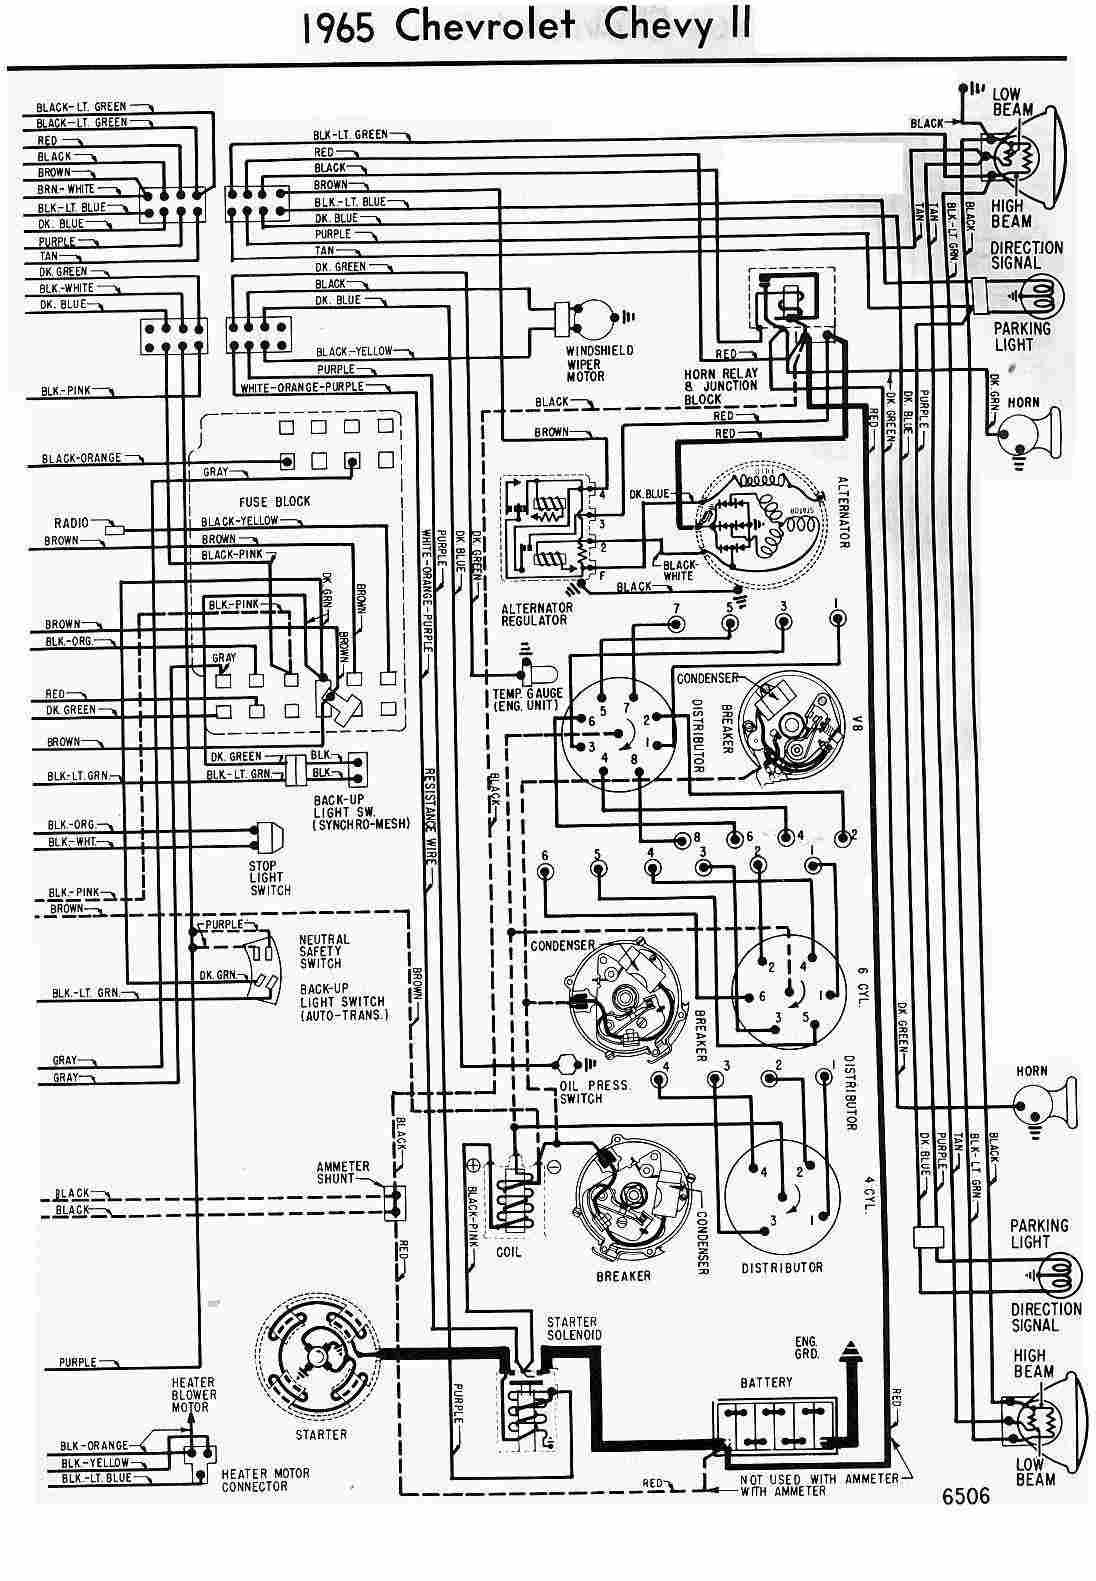 wiring diagram diagram of 1965 chevrolet chevy ii?t=1508393184 chevrolet car manuals, wiring diagrams pdf & fault codes  at n-0.co